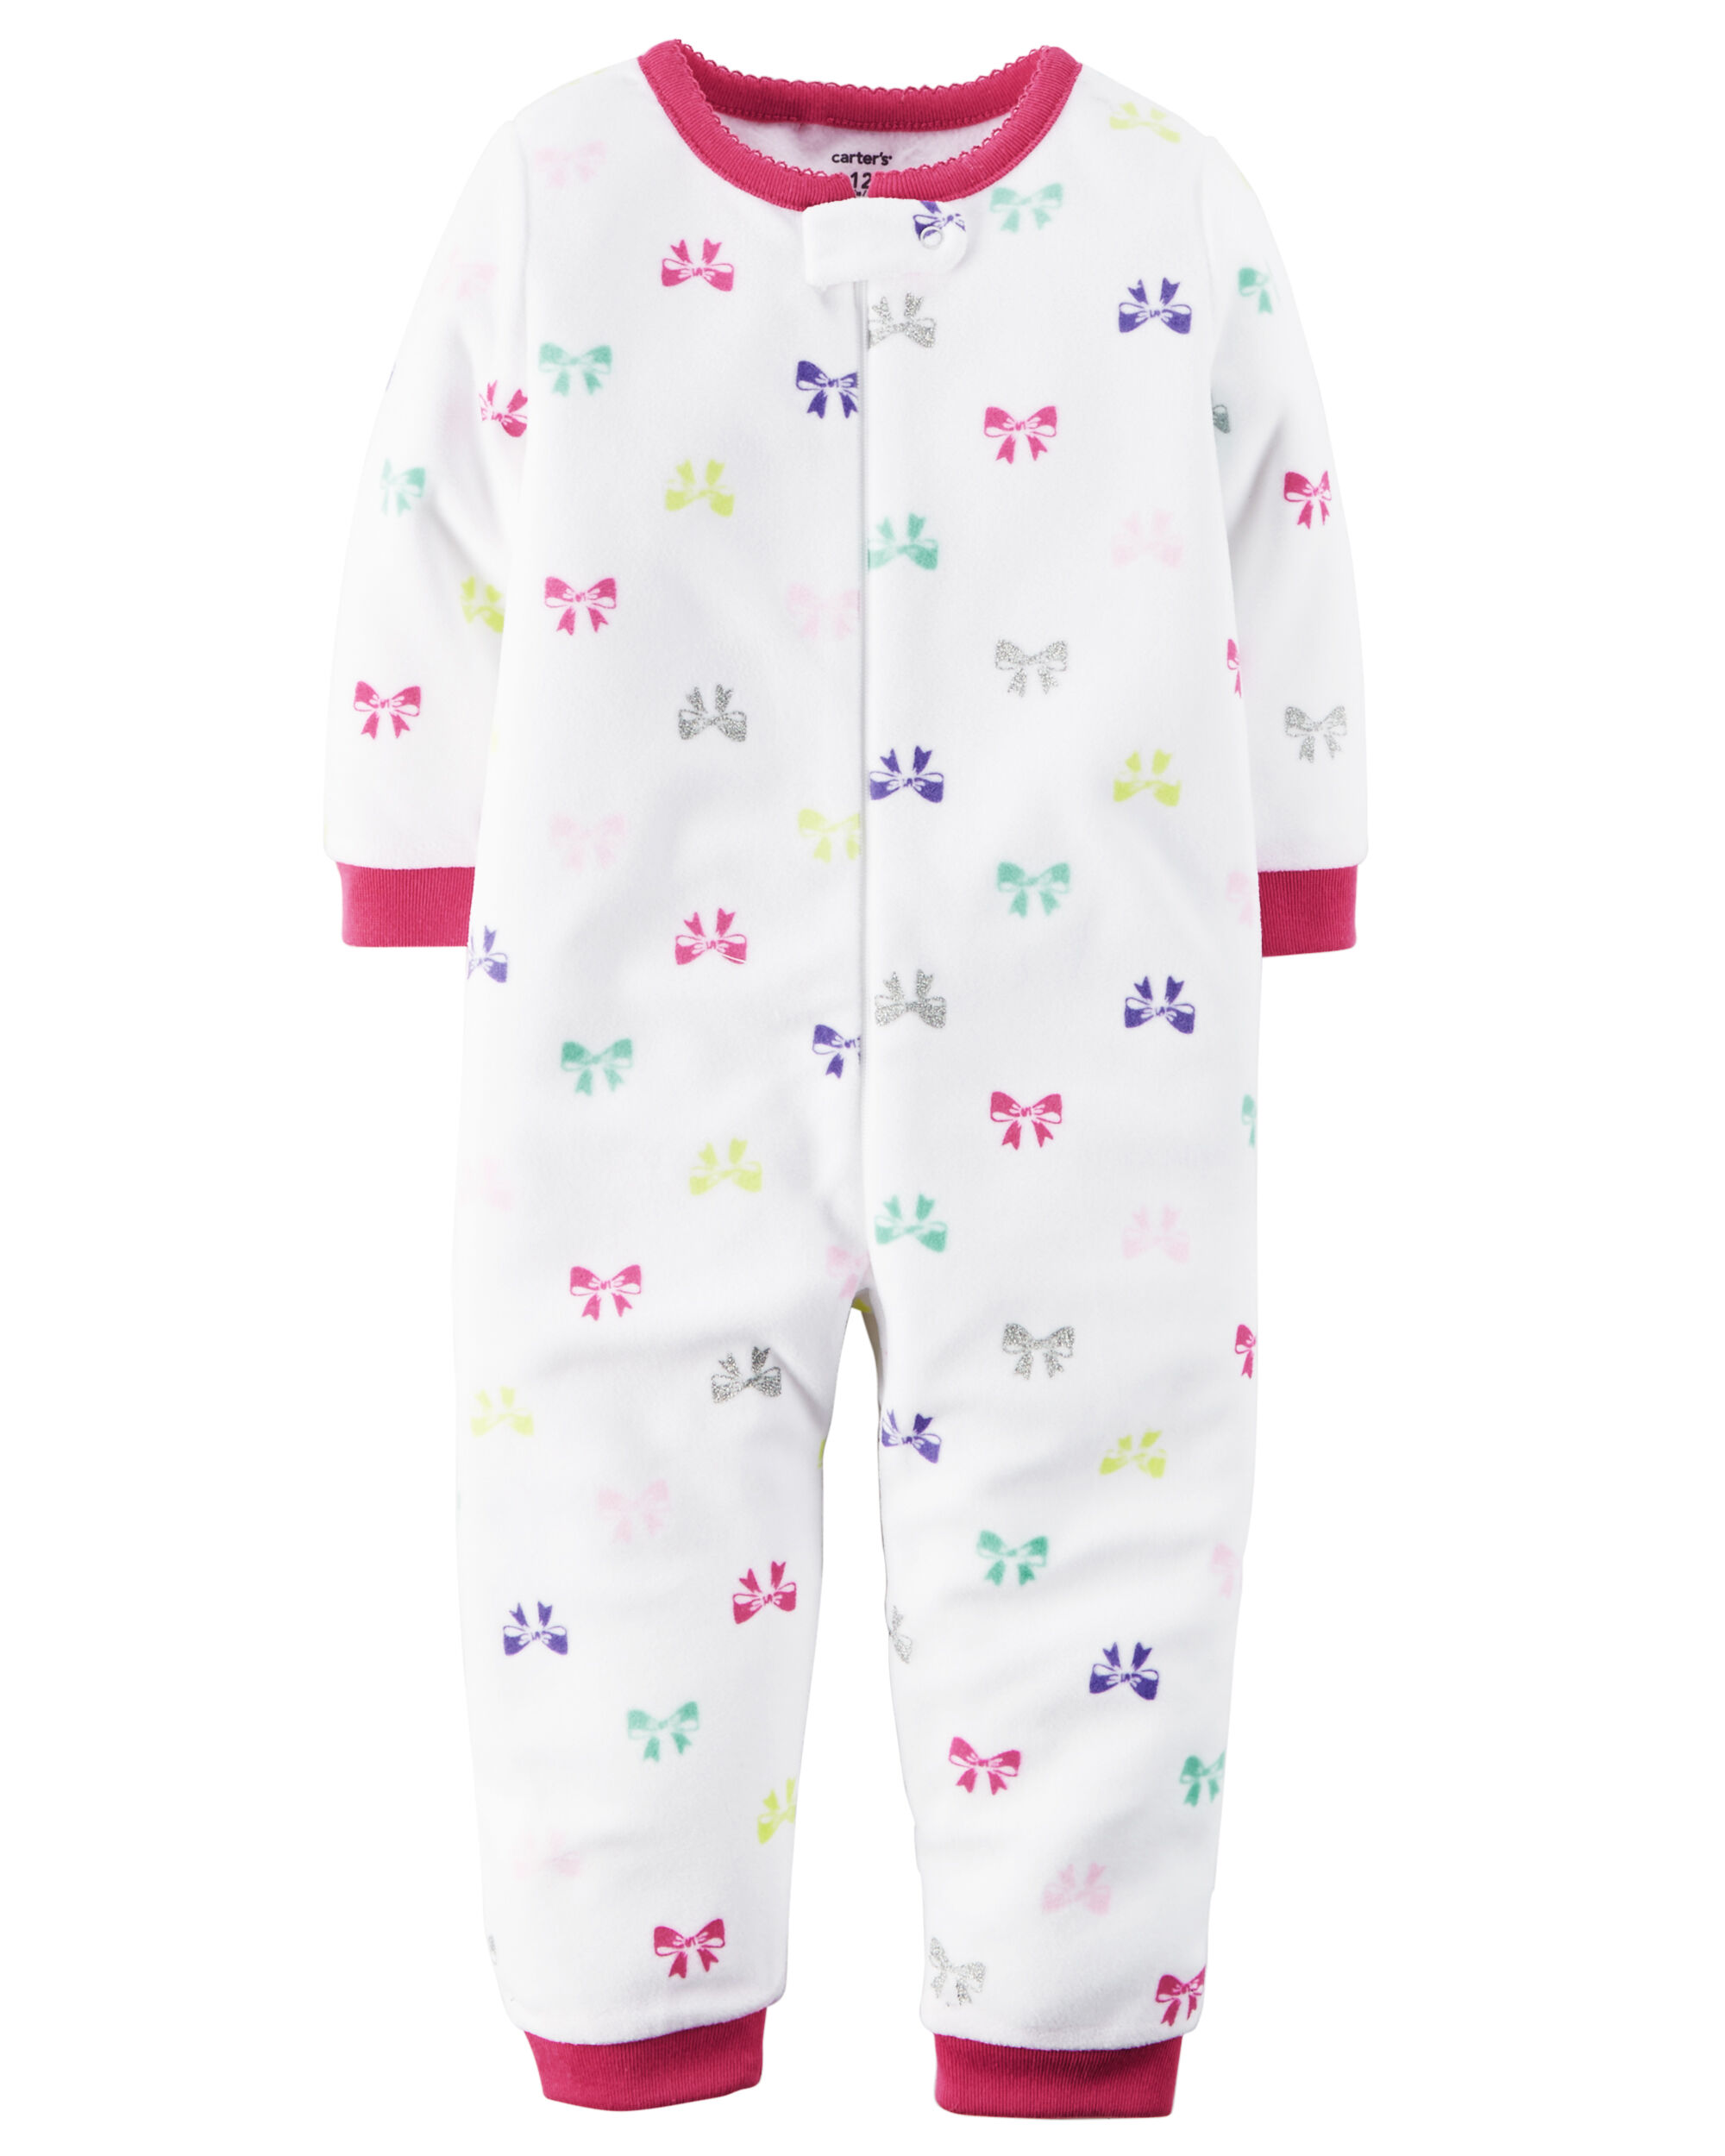 carters pjs fit zoom loading snug v baby sleeper clearance cotton footless sleepers boy one piece